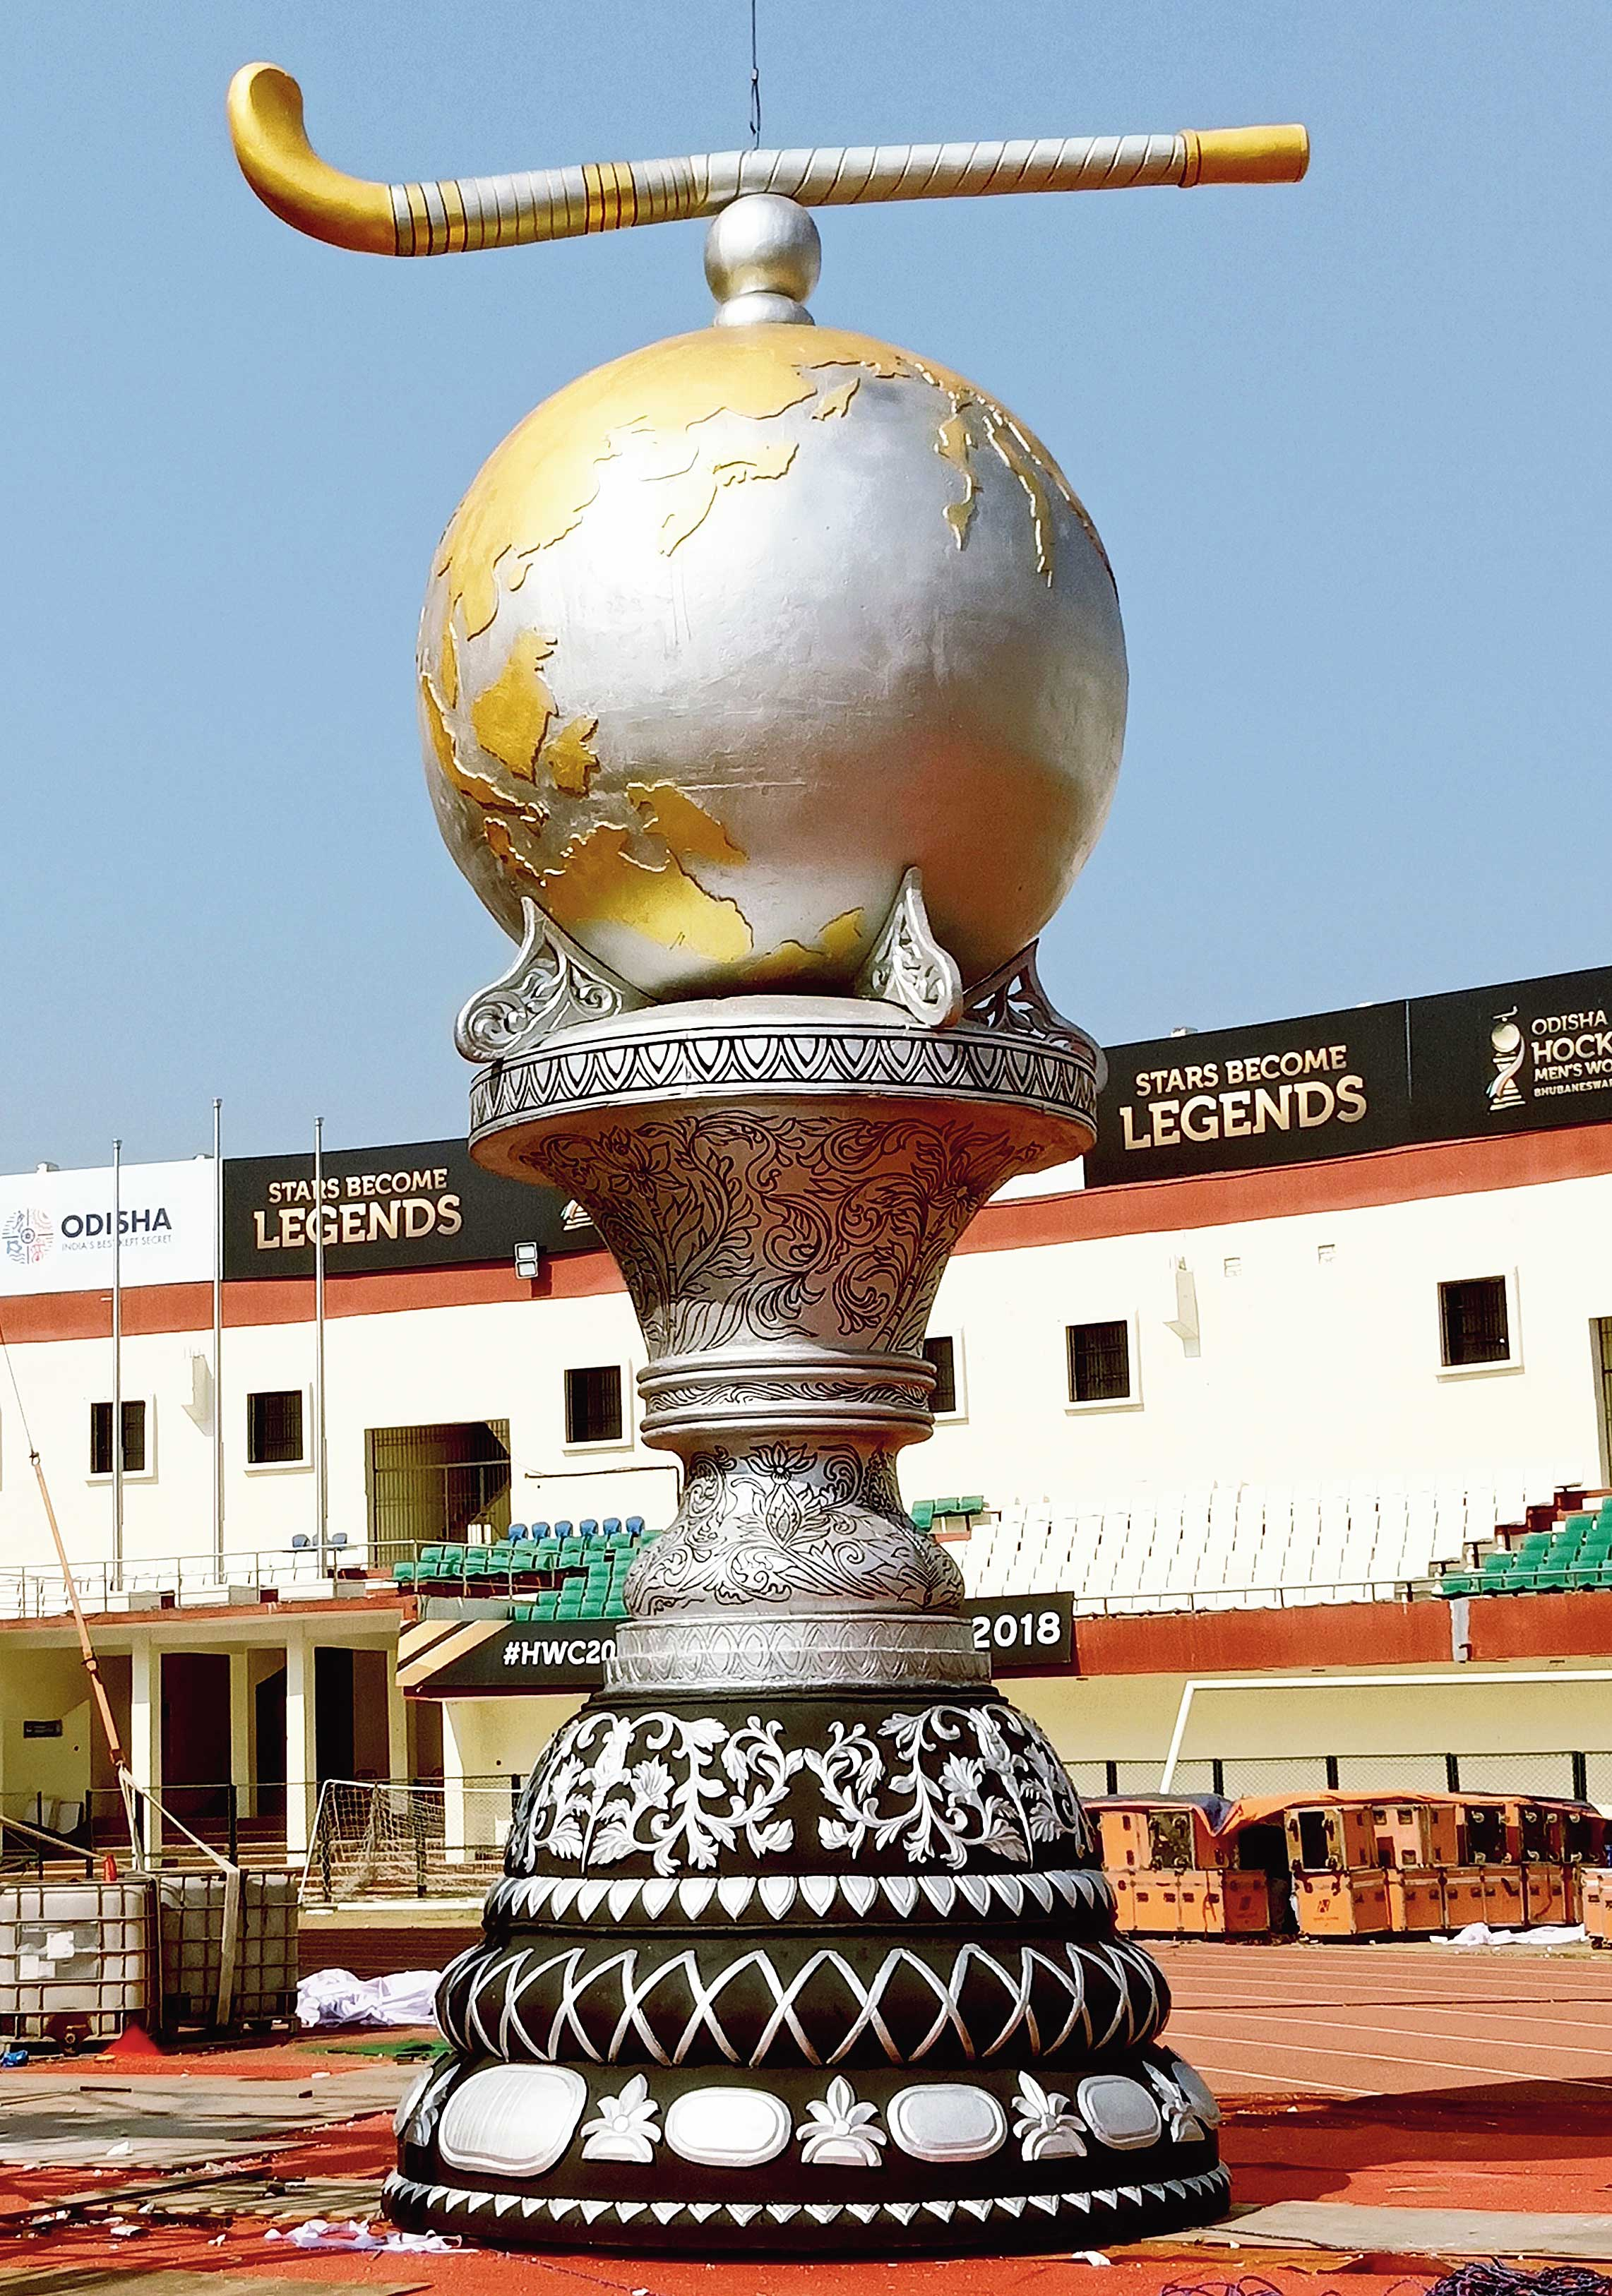 Replica of the Hockey World Cup.